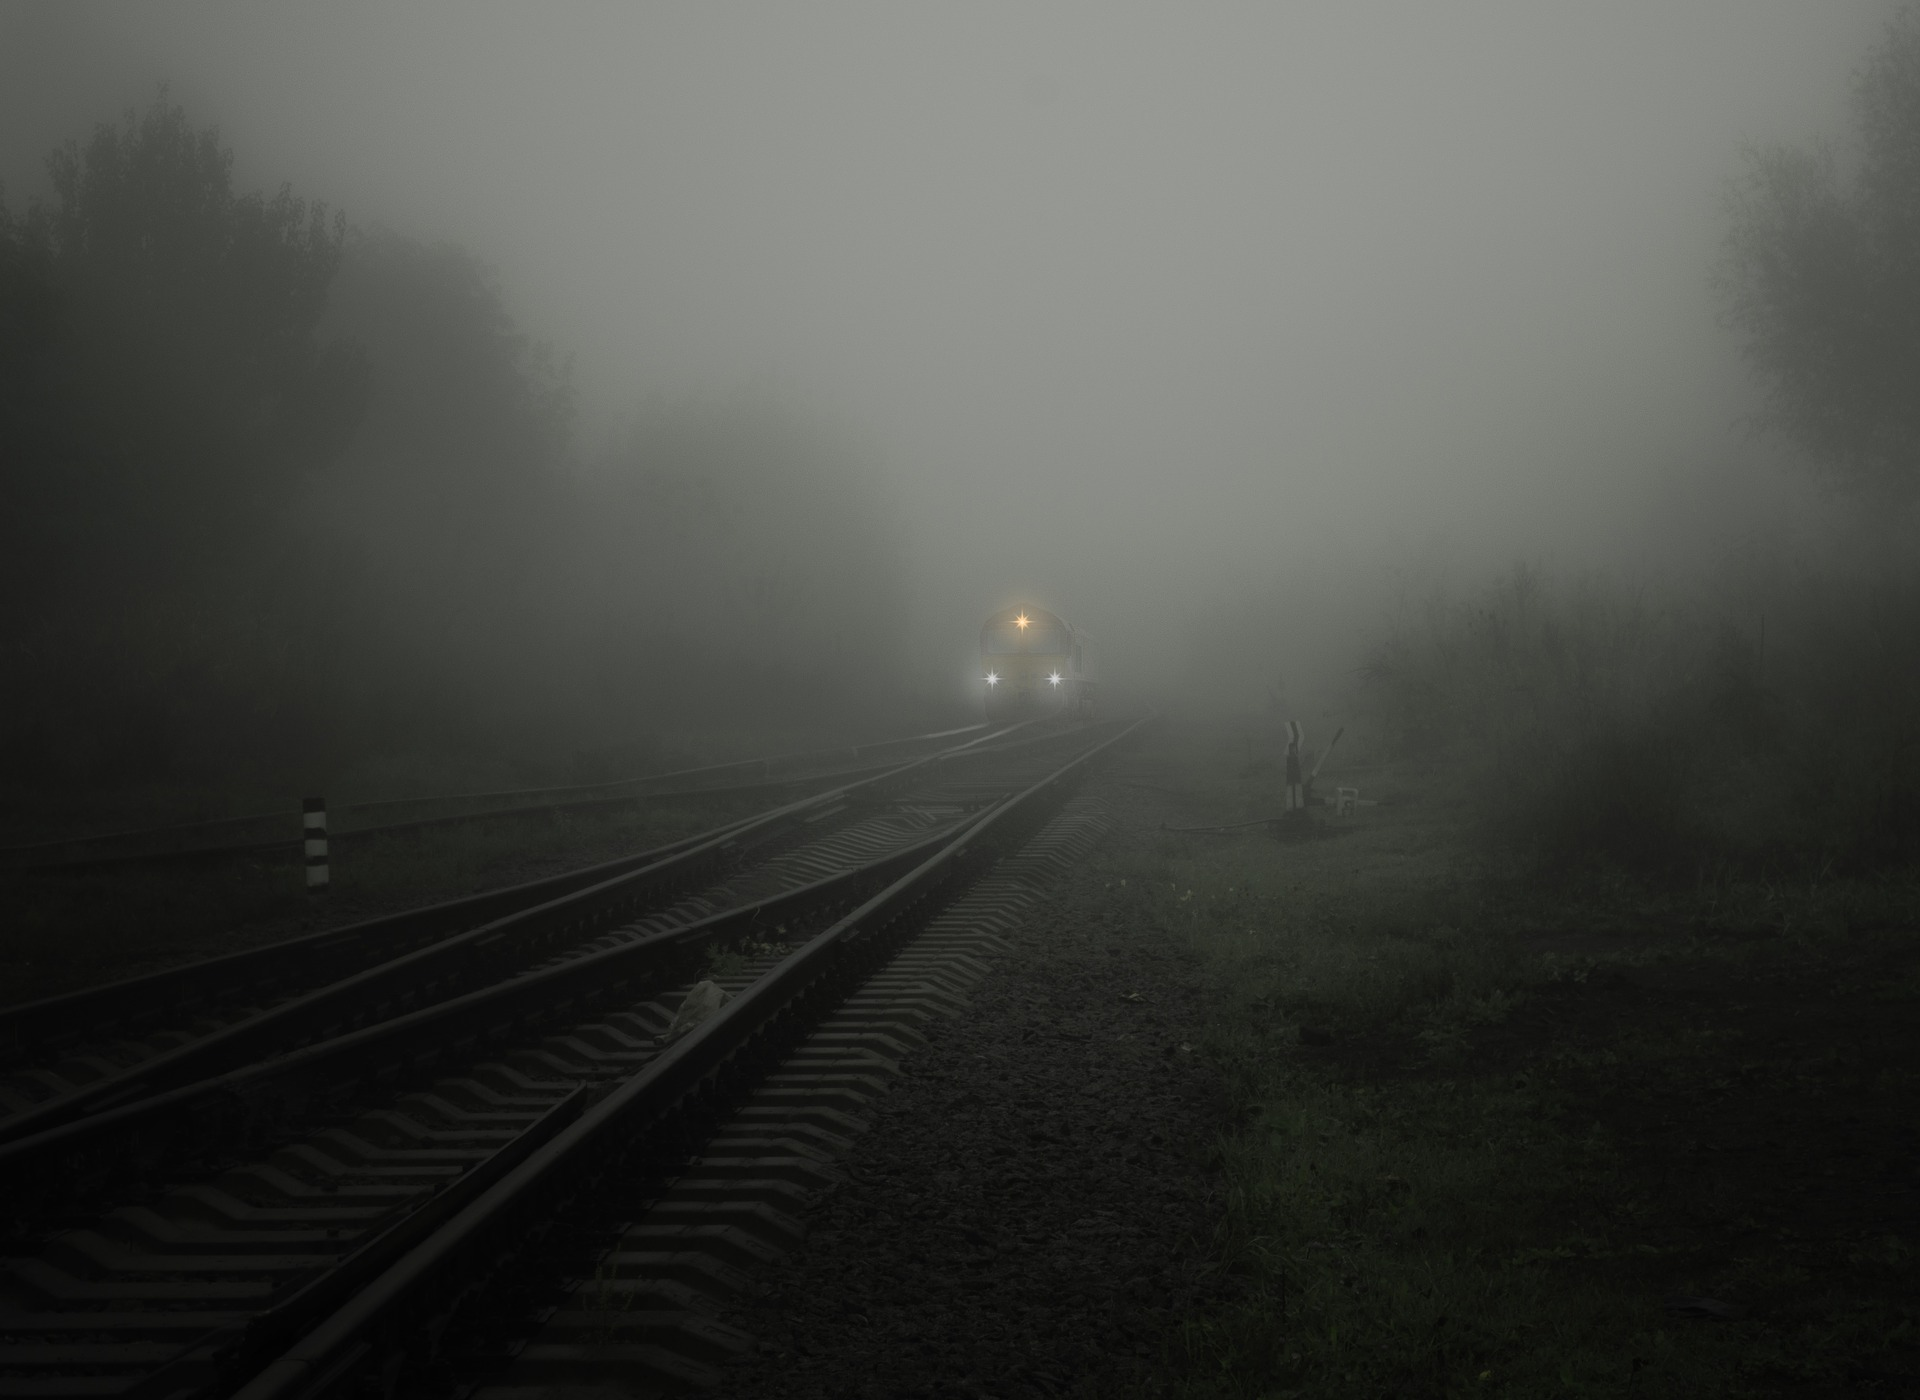 smog on tracks with train approaching